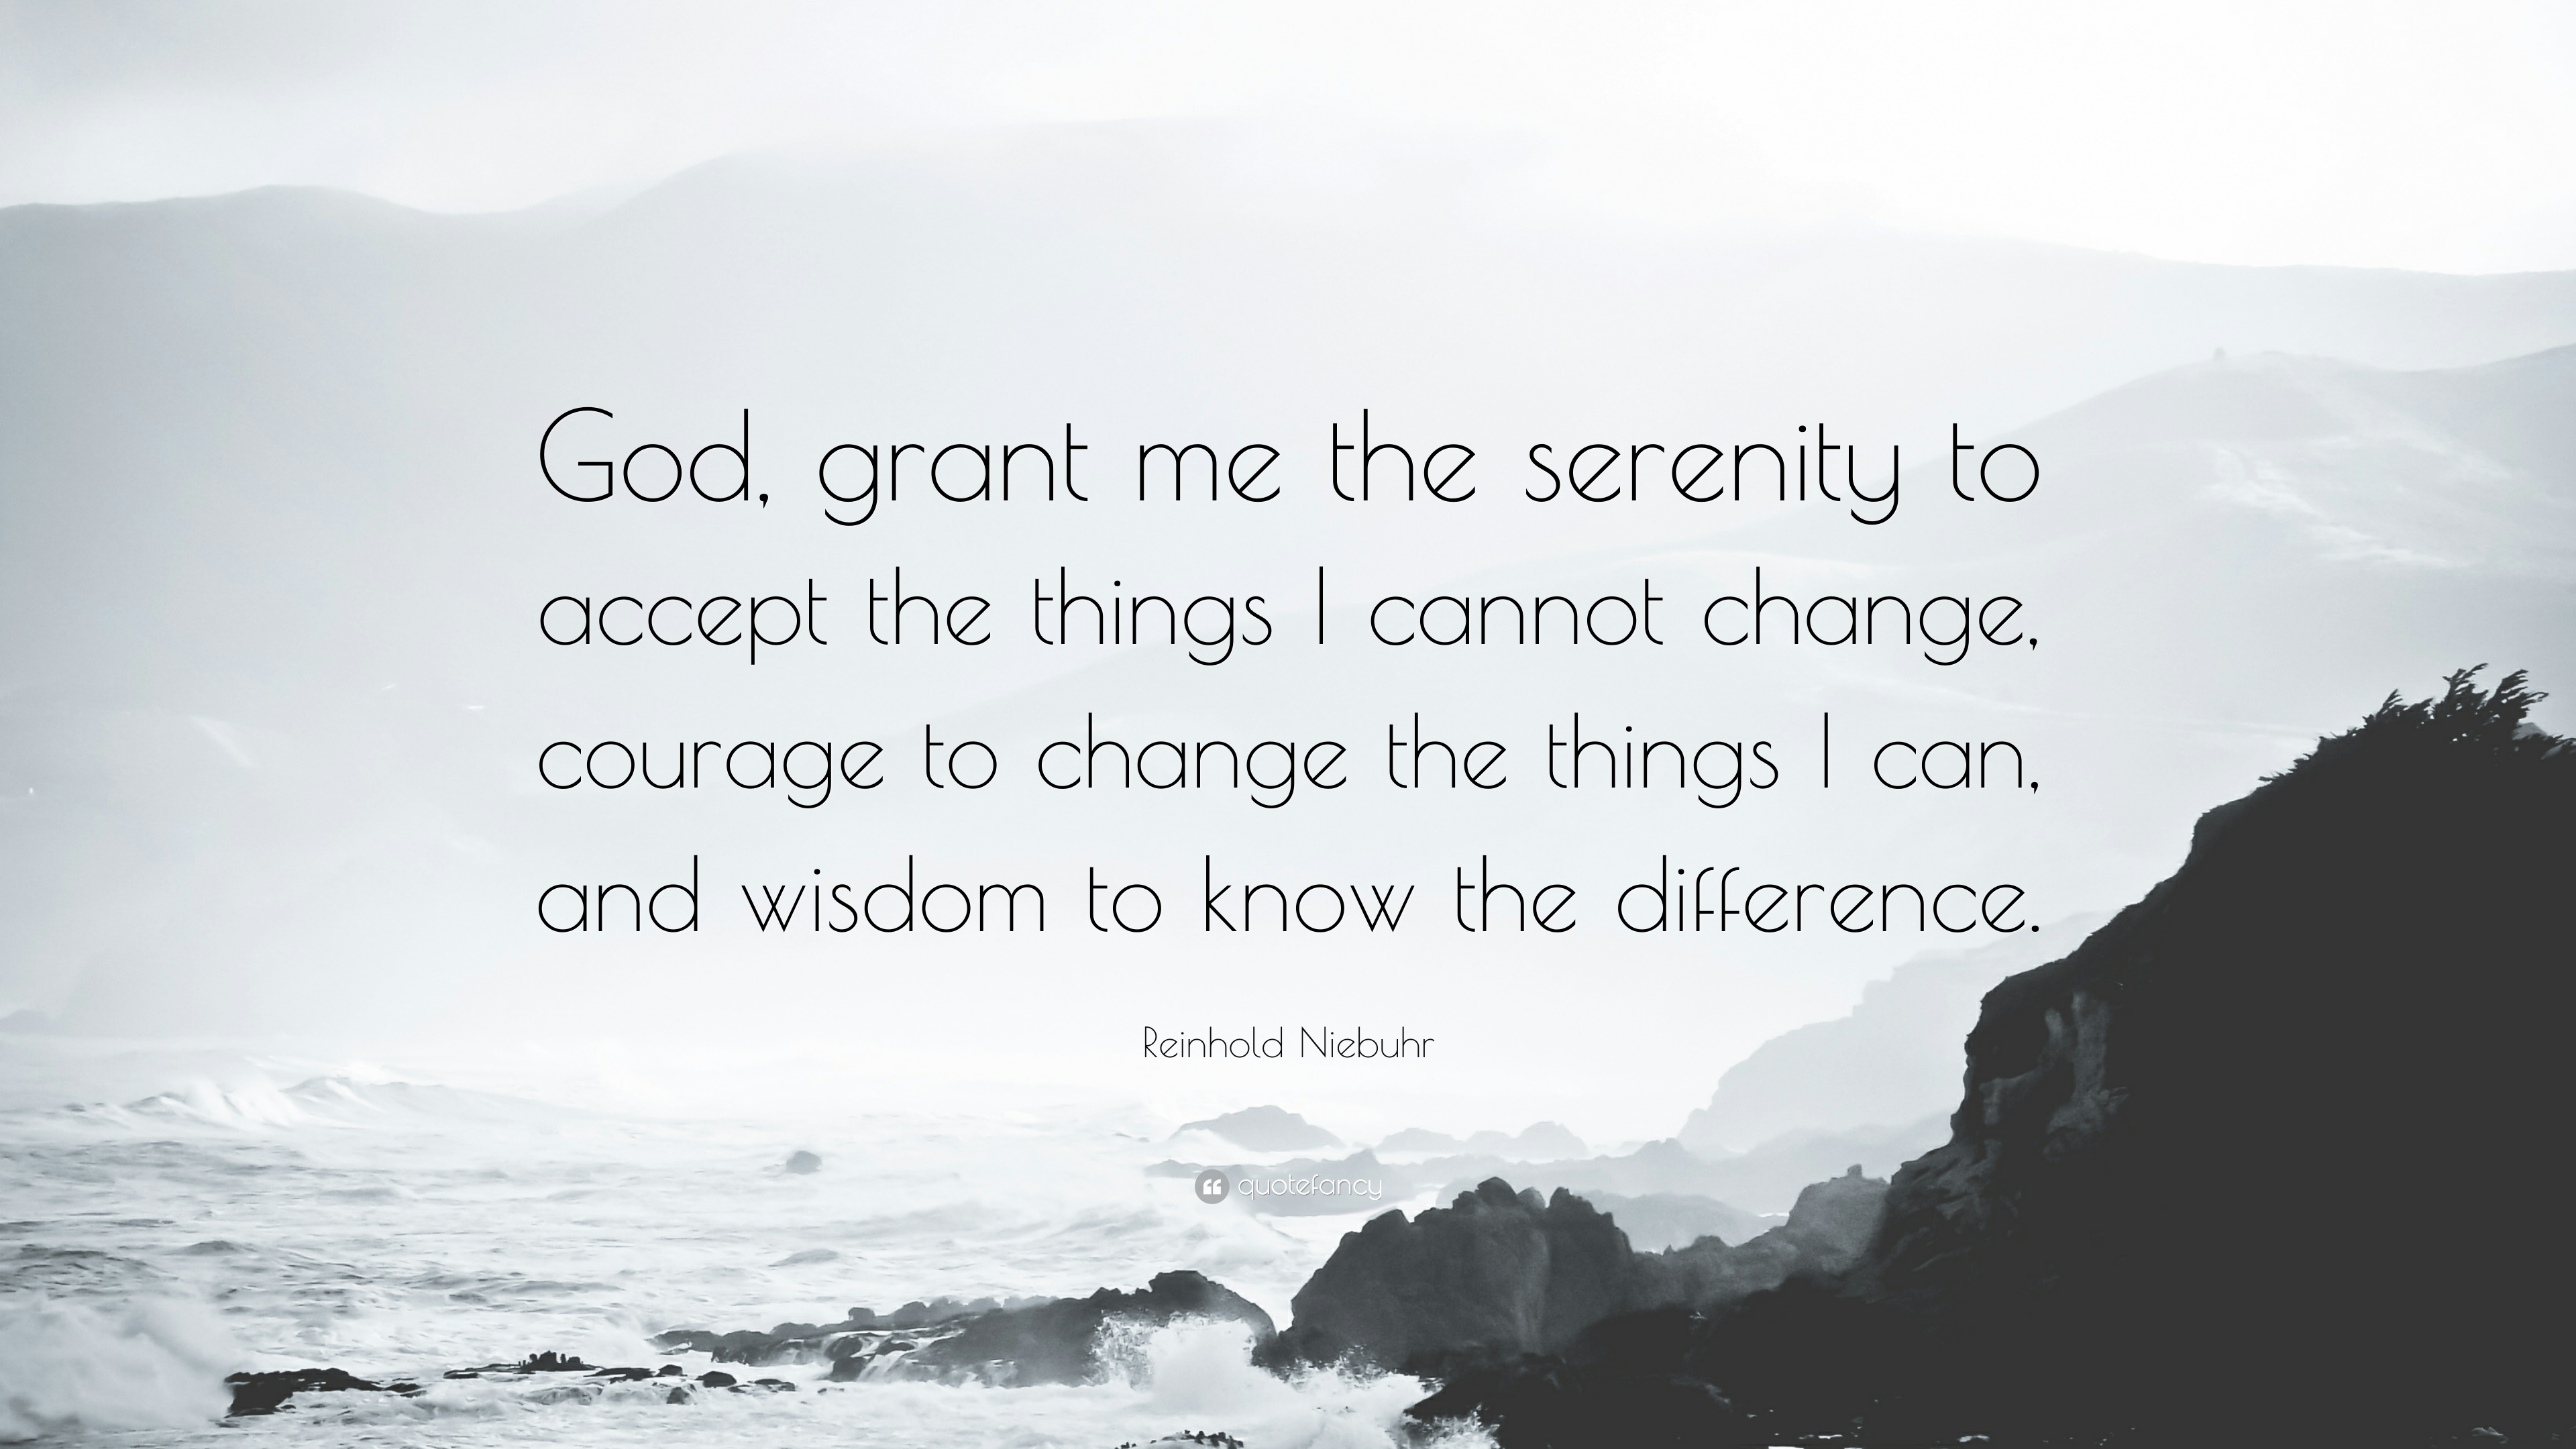 reinhold niebuhr quote god grant me the serenity to accept the things i cannot